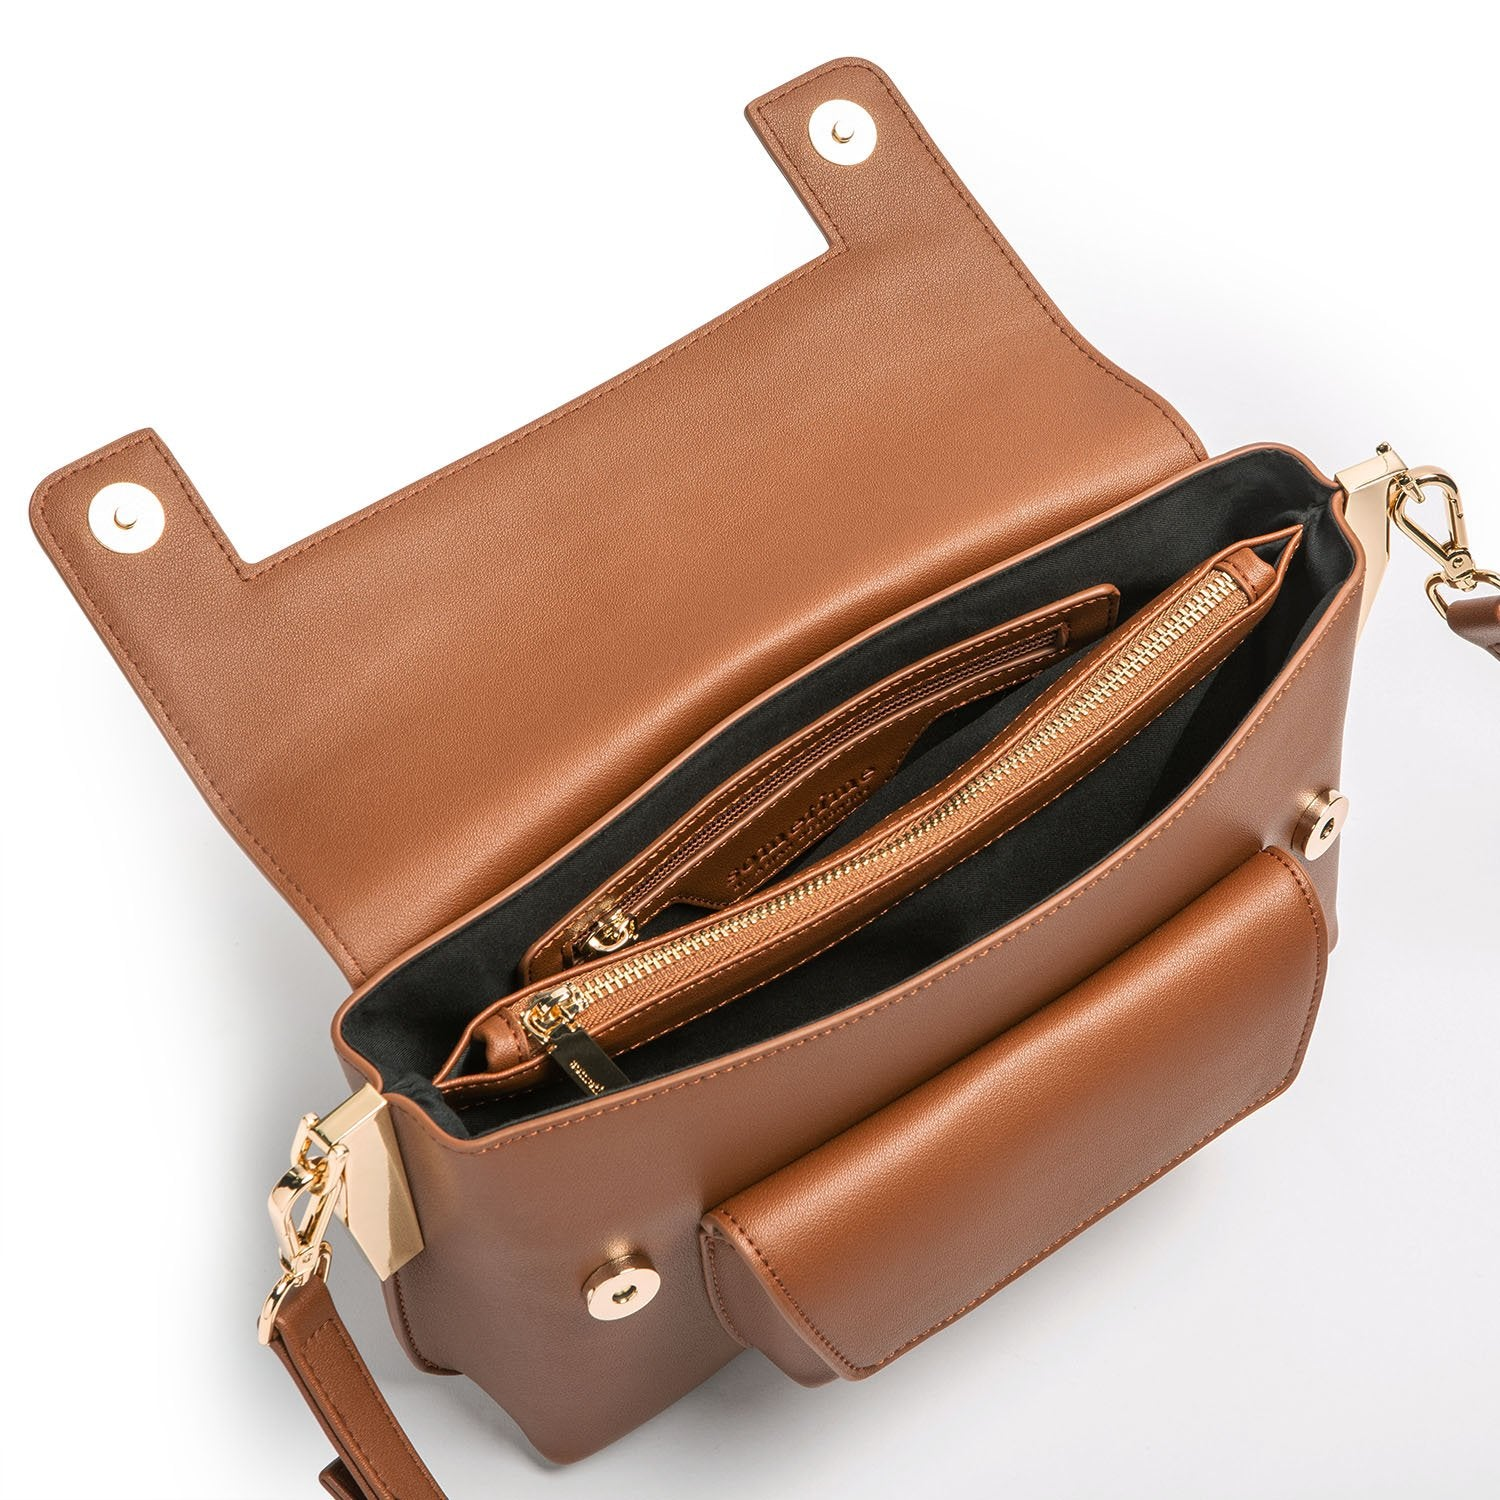 Lofarbag 2 - Brown